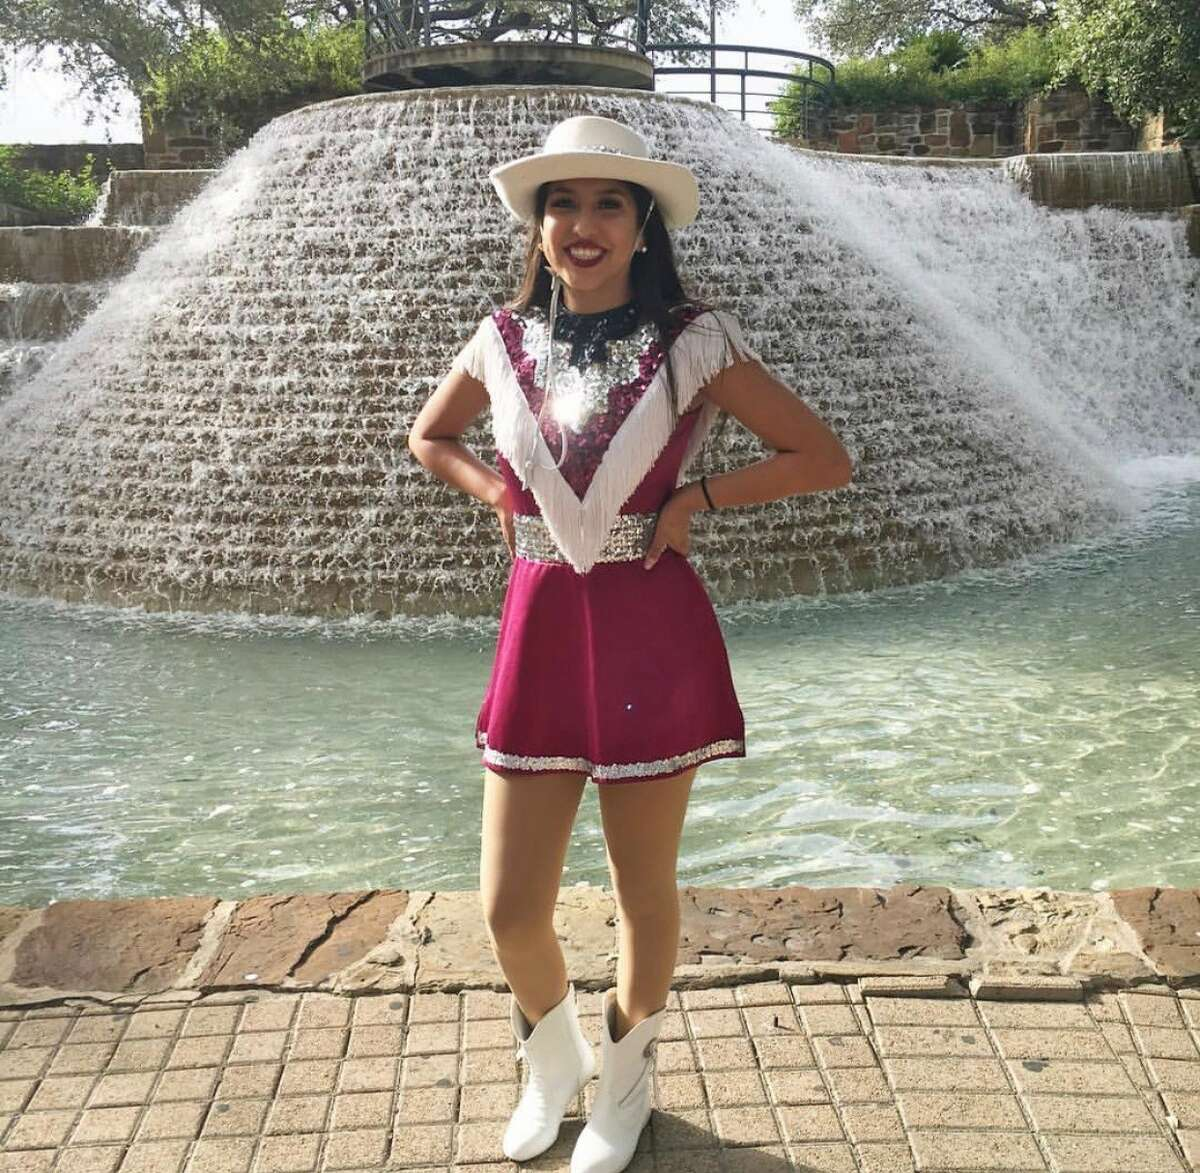 Clarissa Riojas, 18, was fatally shot Wednesday, April 25, 2018, at an apartment complex in the 3900 block of Southeast Military Drive. Her killer, 19-year-old Louis Nickerson, ran into a nearby wooded area and shot himself after the killing.